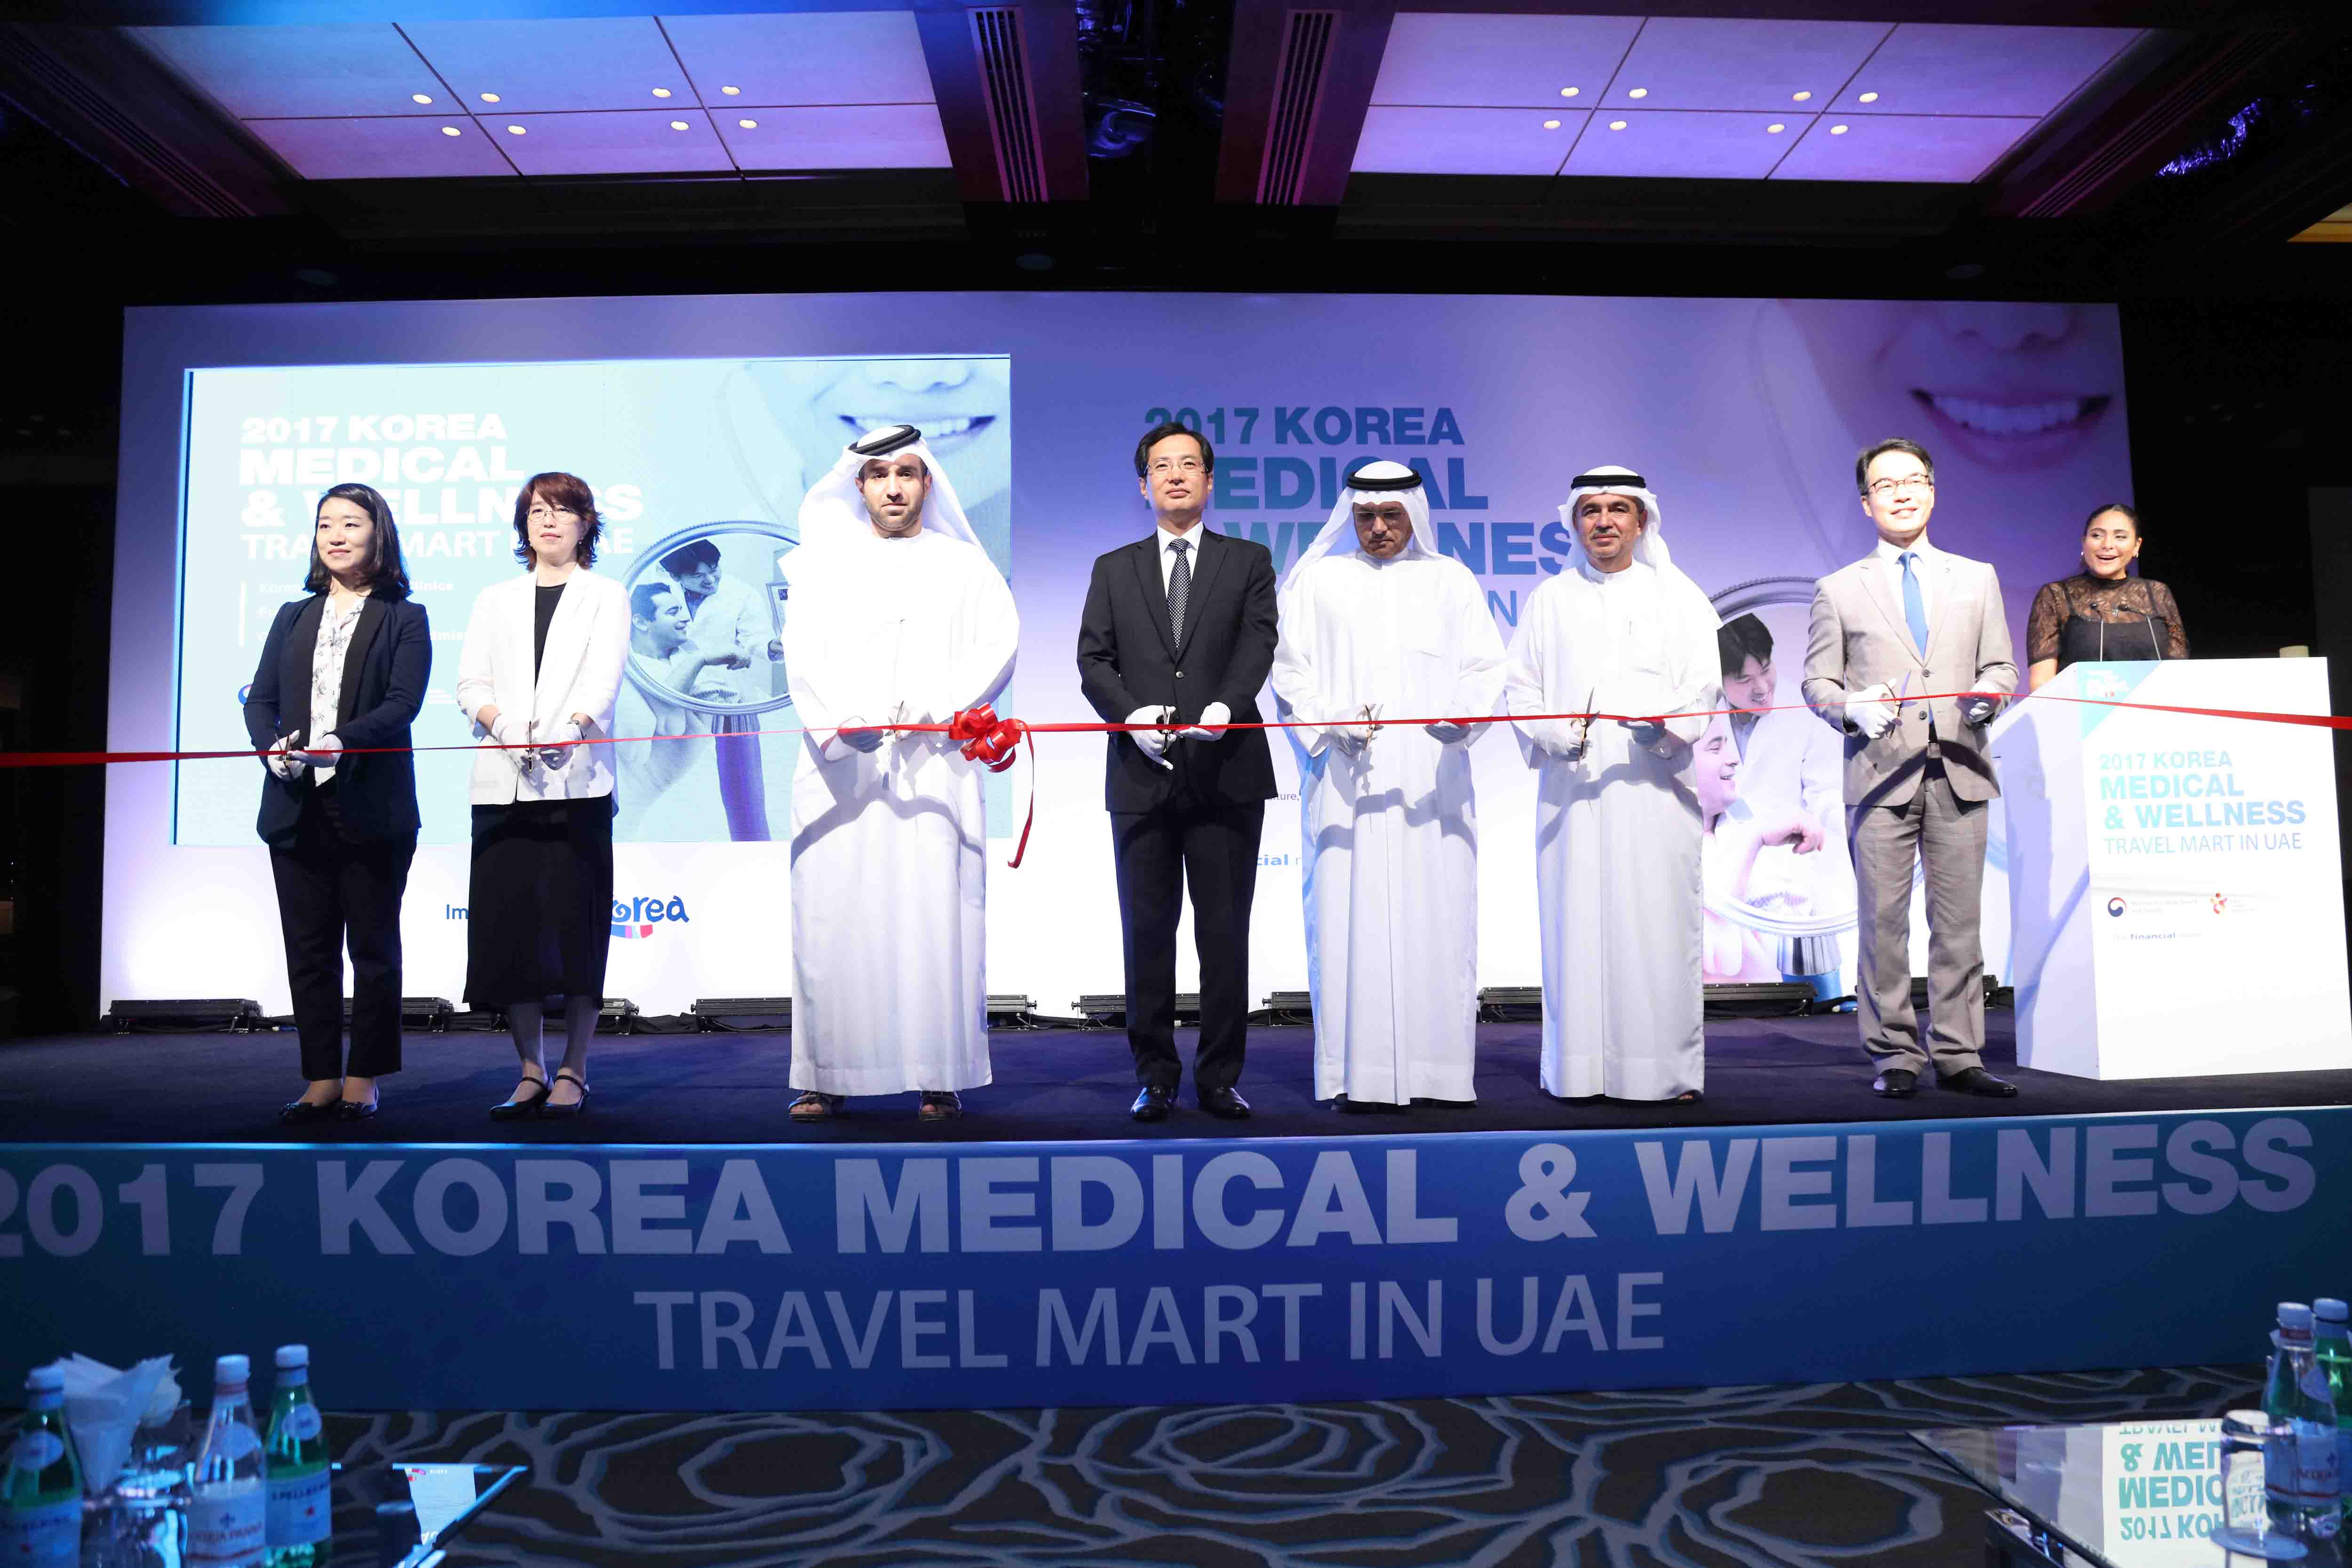 2017 Edition of Korea Medical & Wellness Travel Mart Kicks off in Dubai.